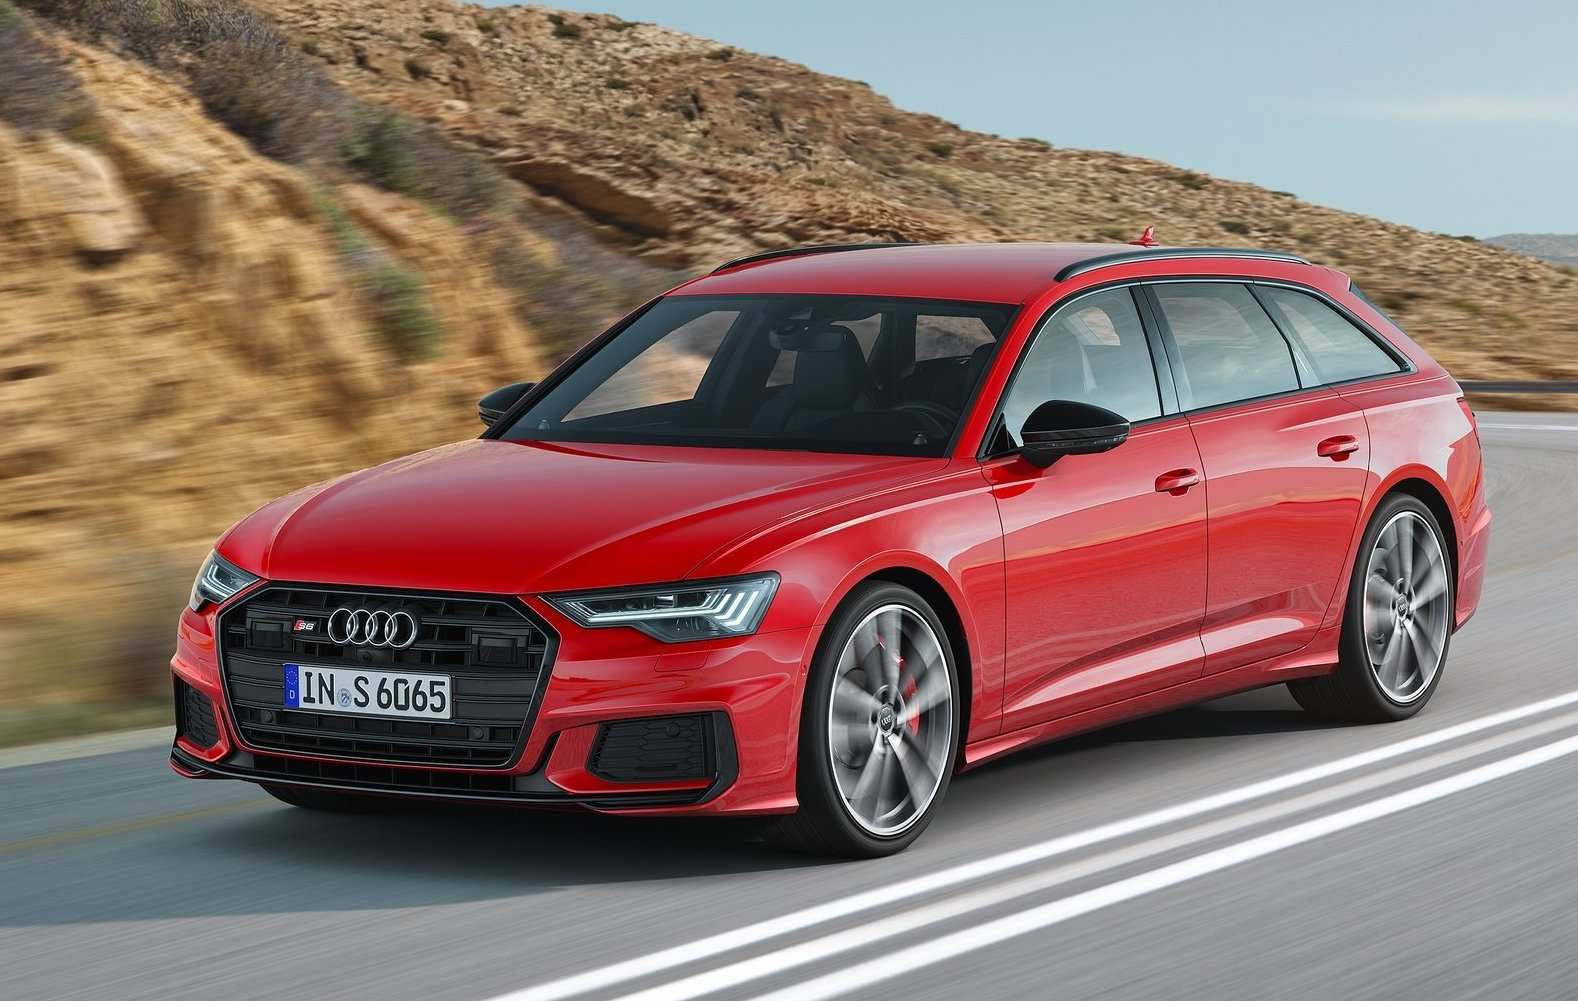 42 The 2020 Audi S6 Redesign